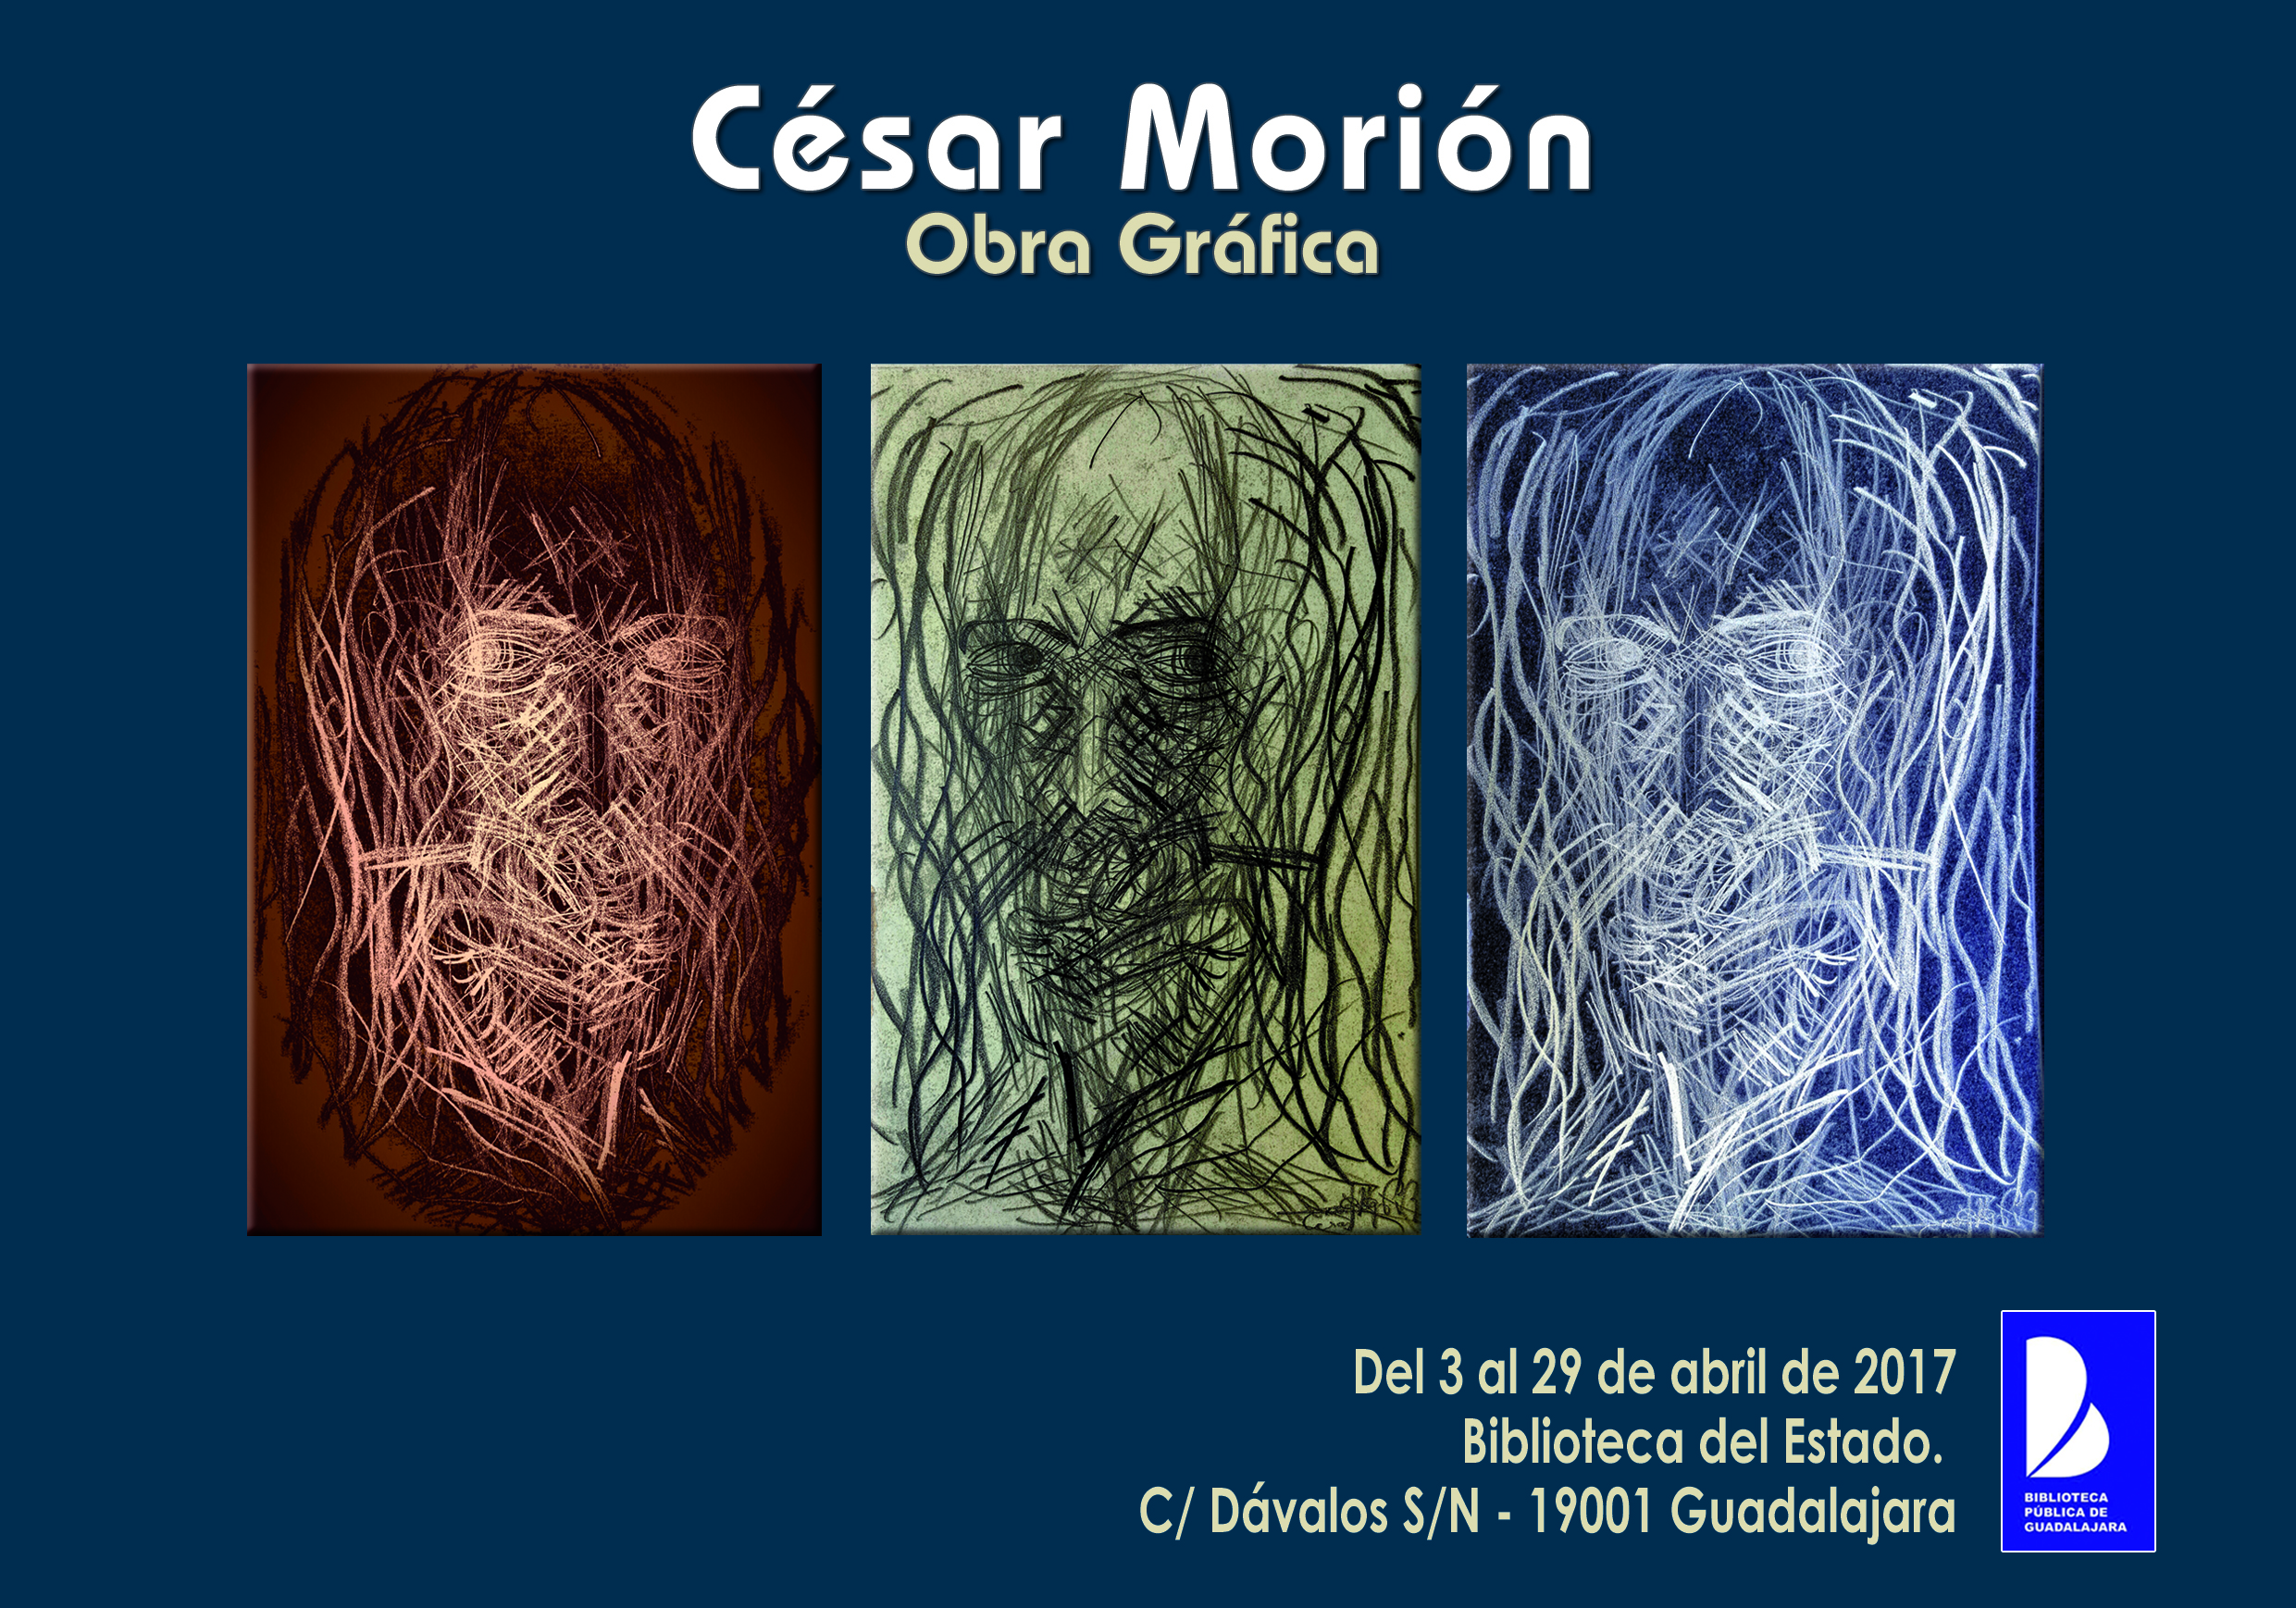 Solo exhibition in Guadalajara, Spain; I add bellow the publication that Guadalajara's Central Library issued, which provides and article and further information on the show: